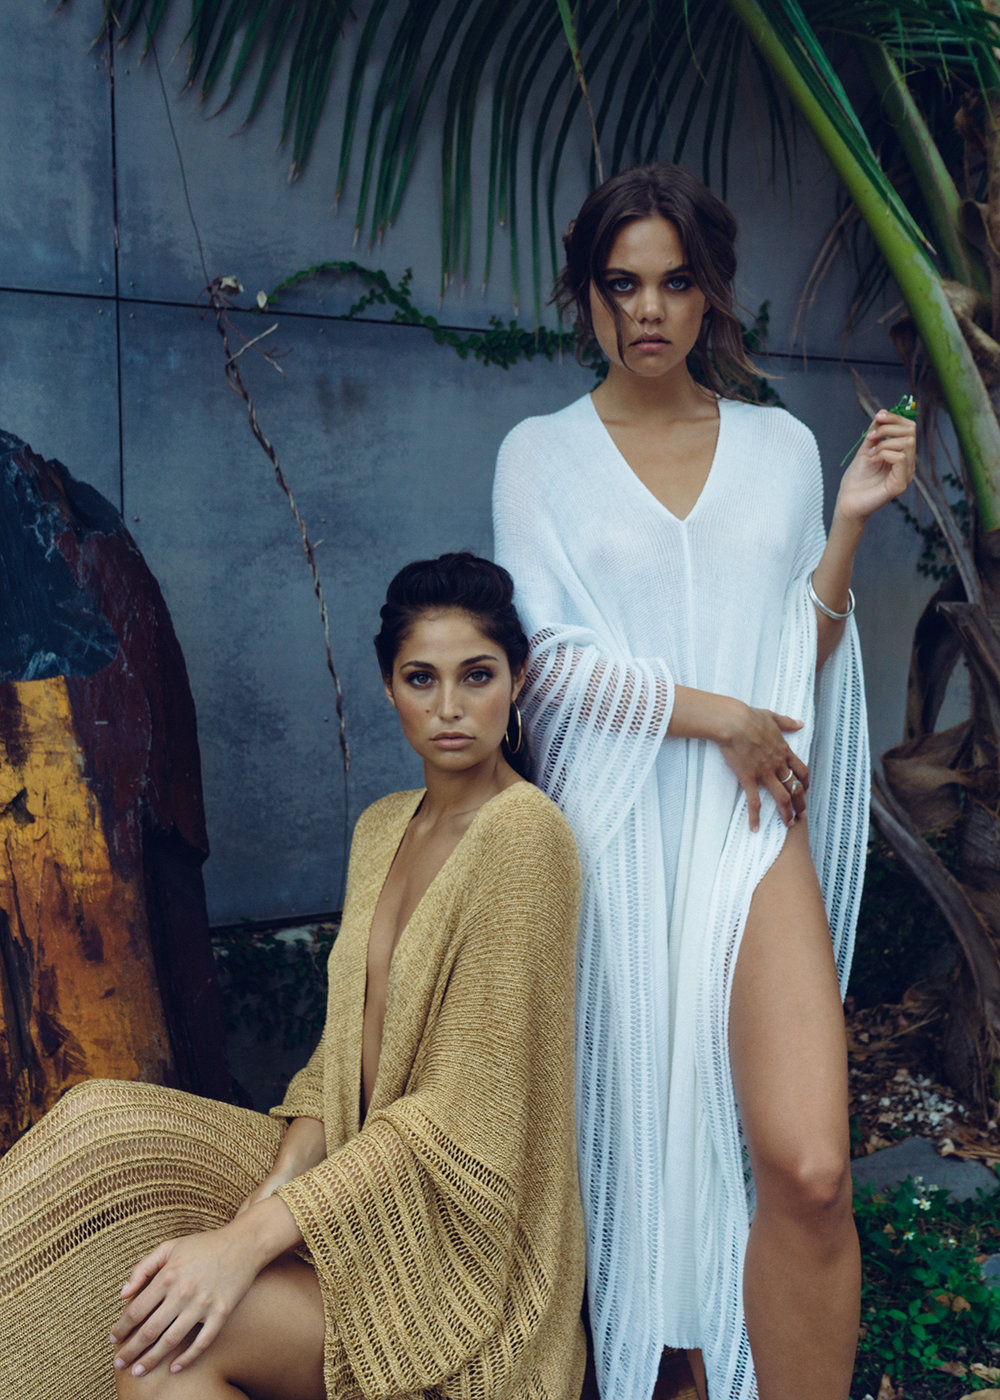 Krel - A fashion studio located in Ironside Miami, Florida. Hand loomed knitted resort wear, jumpers, couture and more.